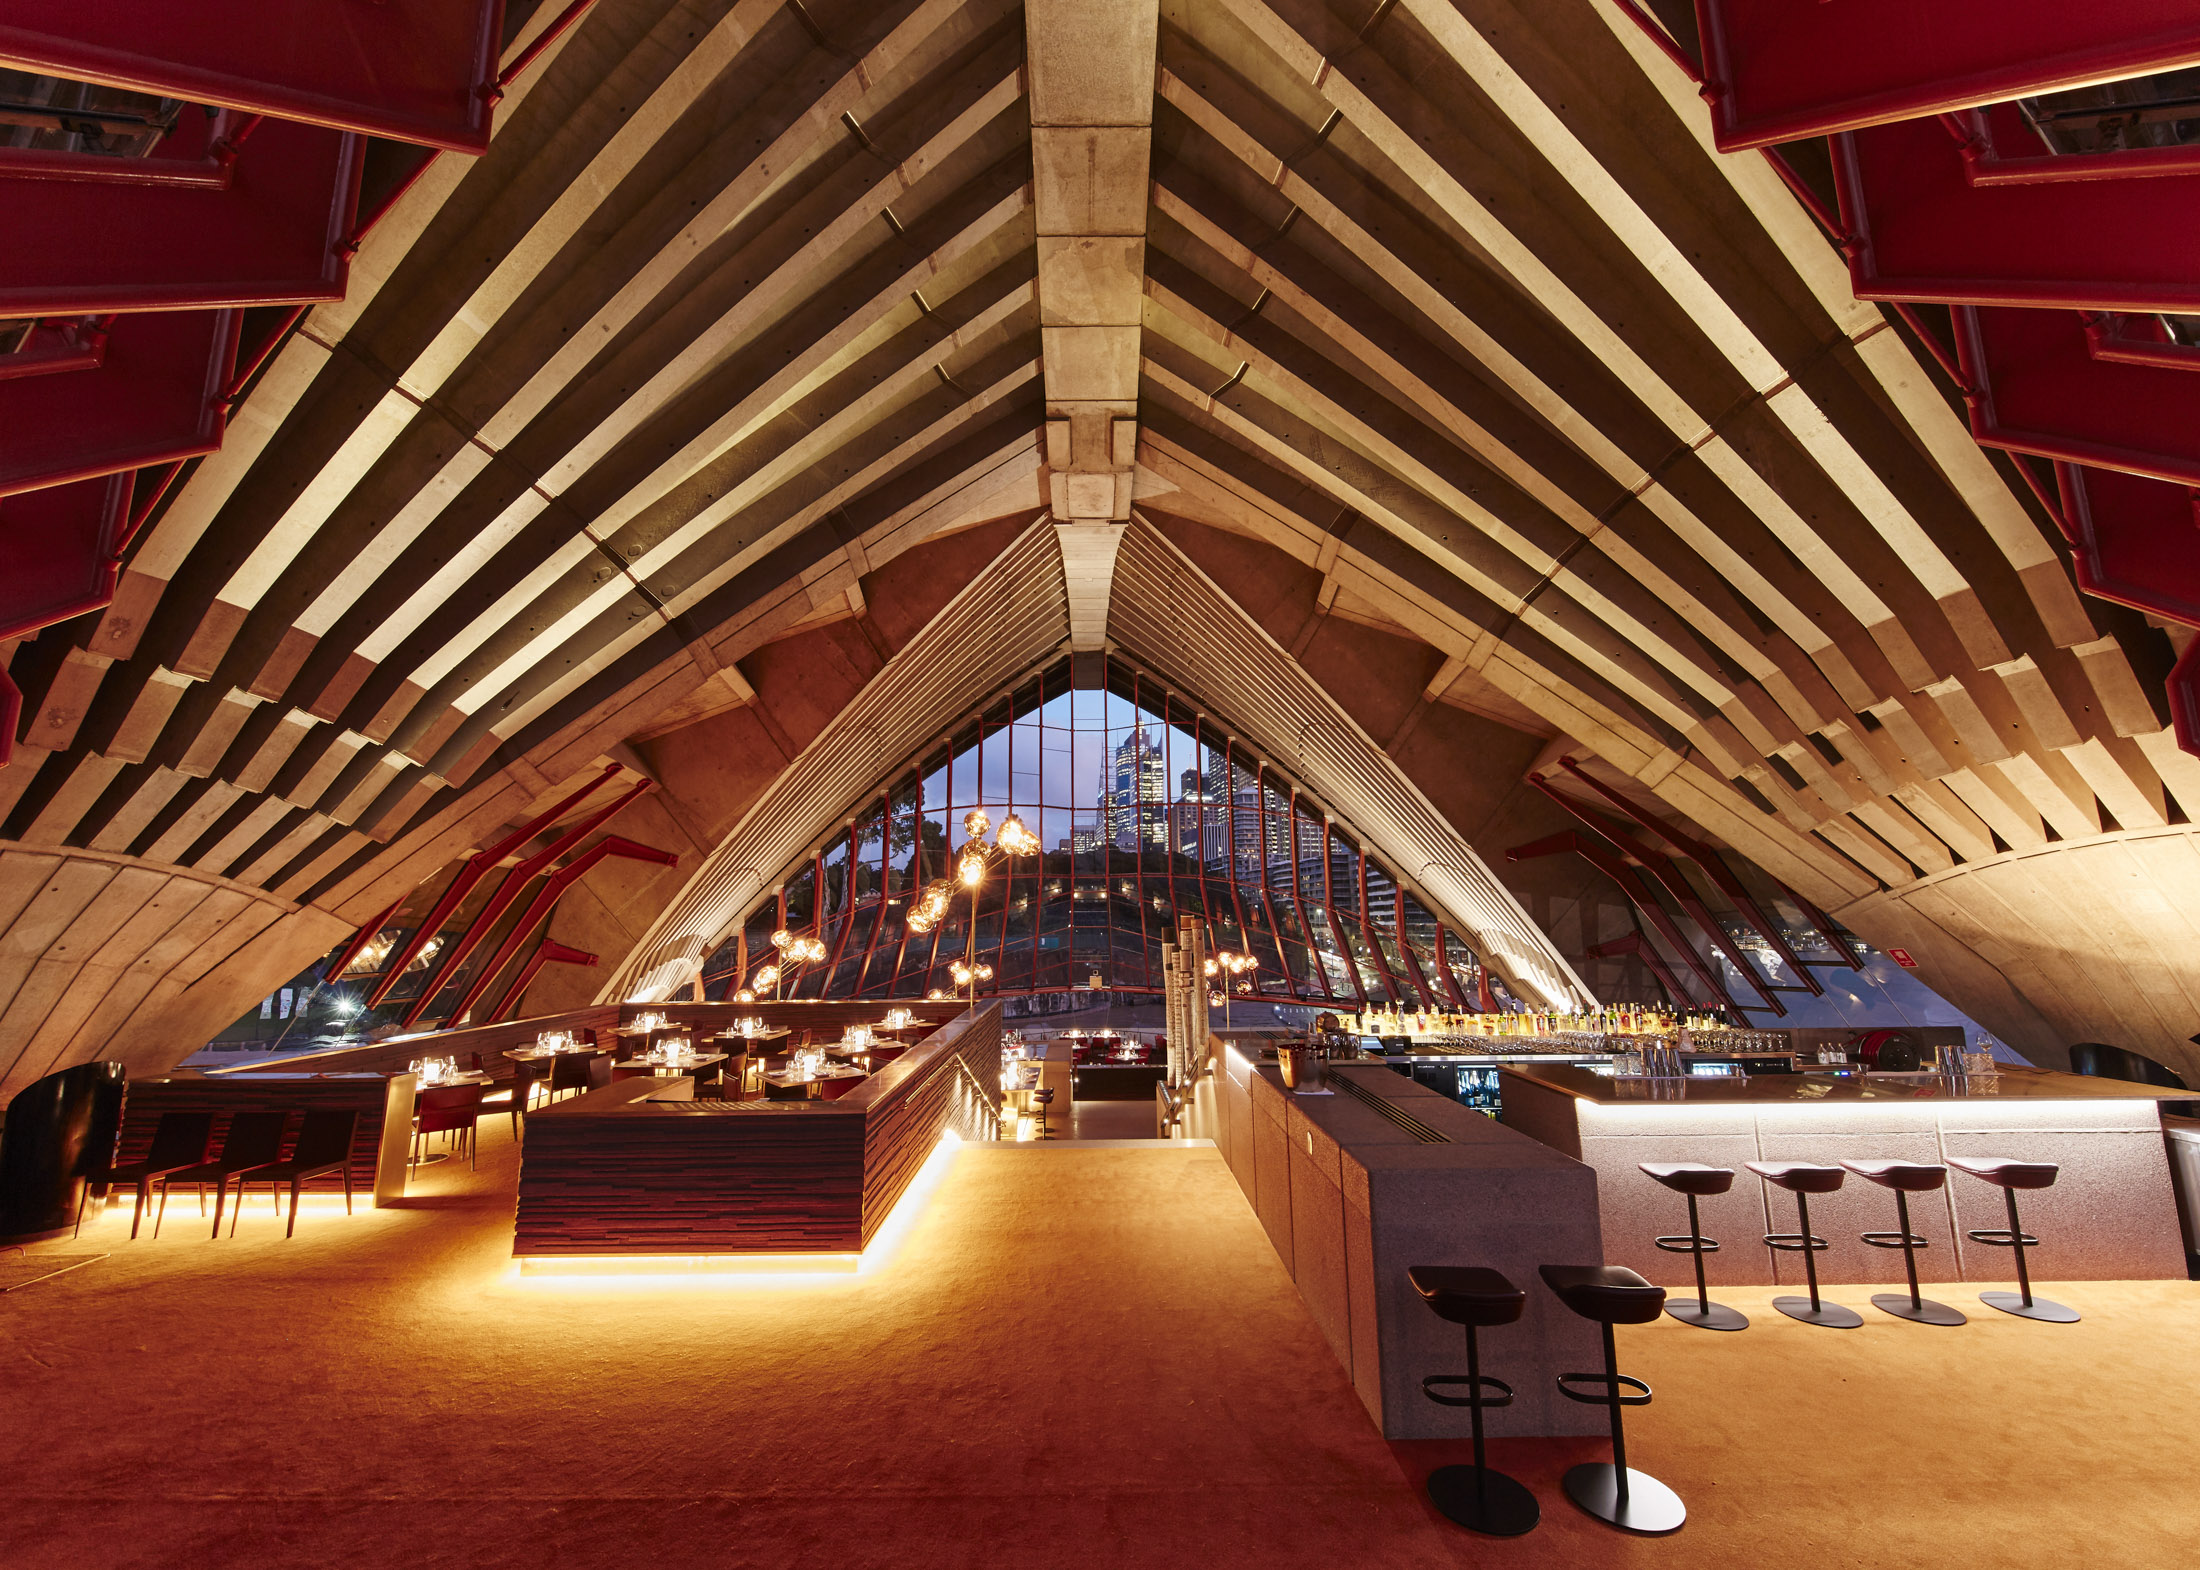 1x 1 - 32+ Sydney Opera House Tour Photos  Gif